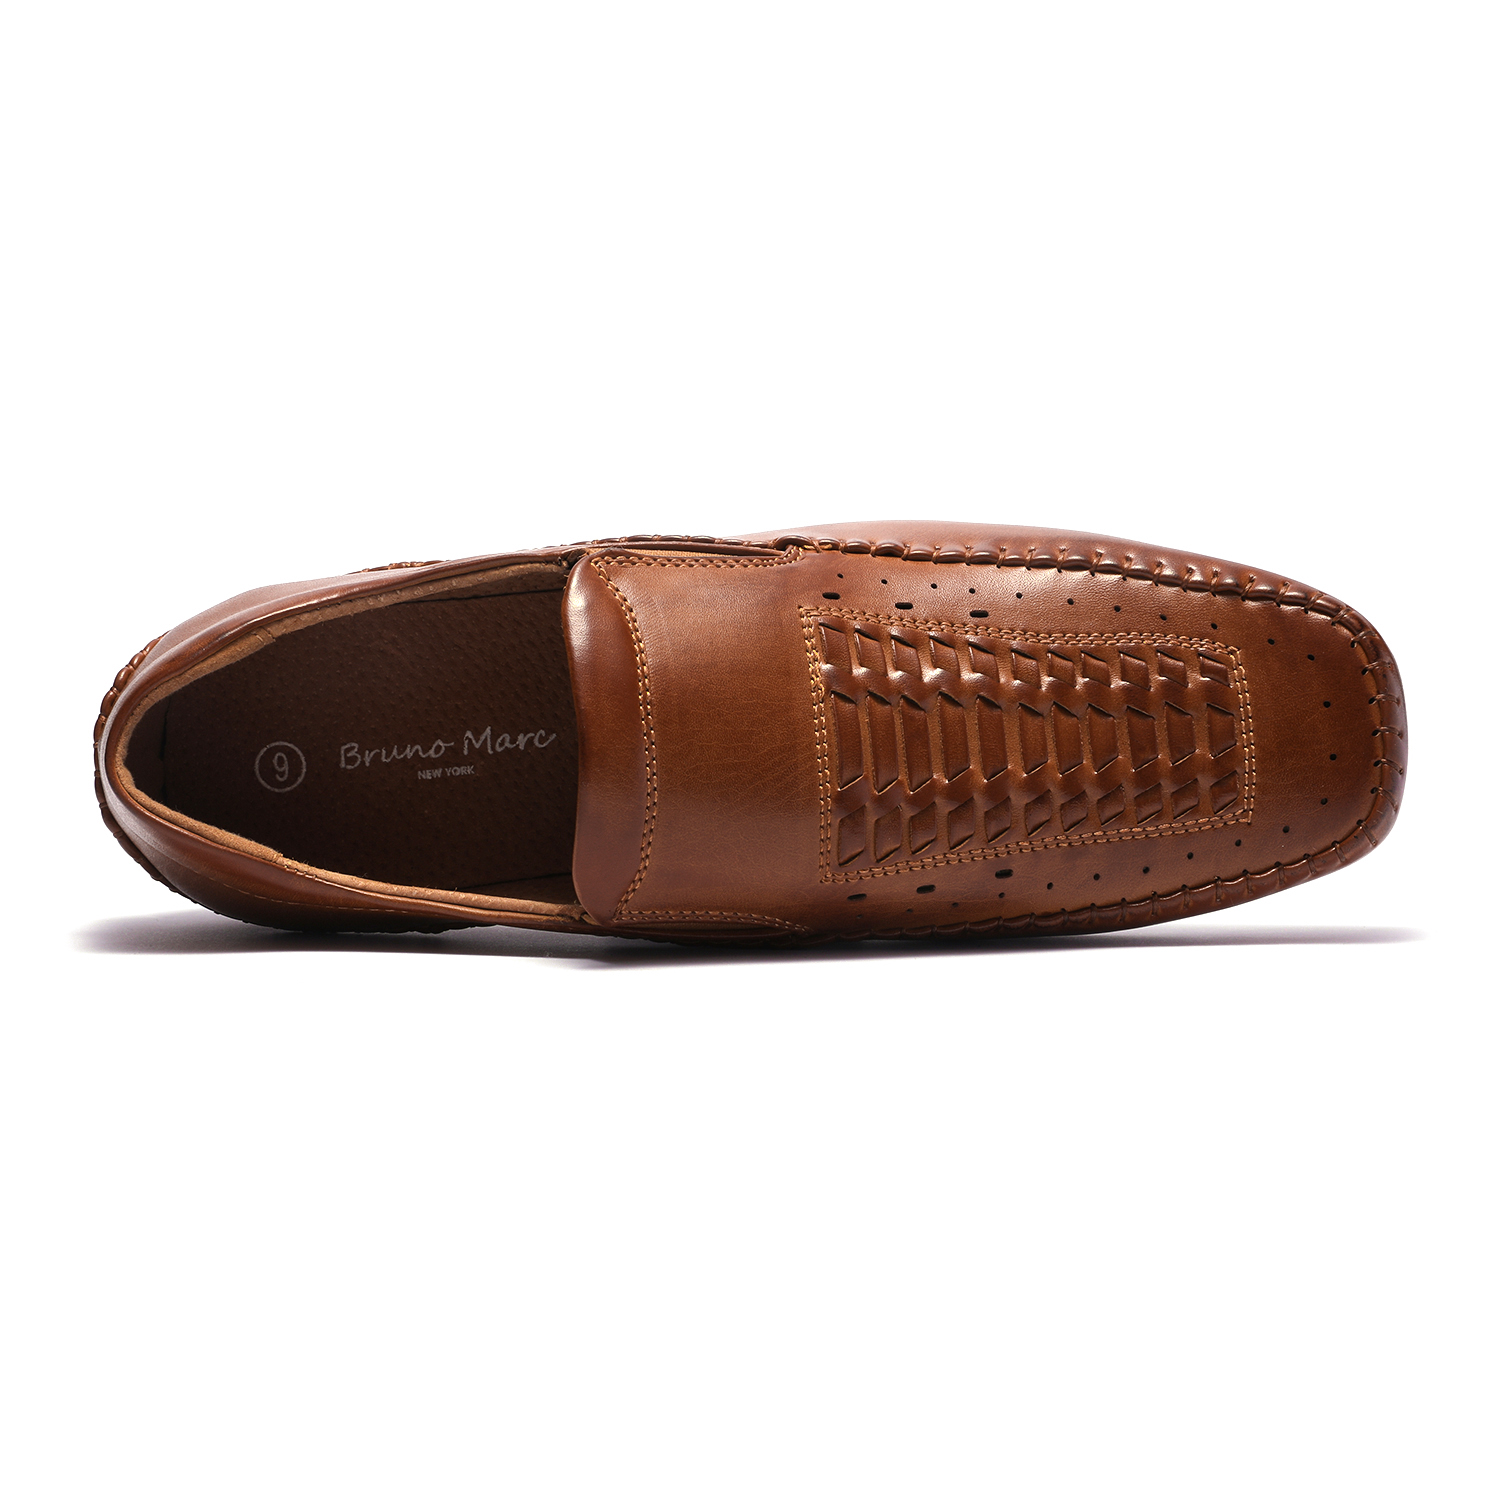 Bruno-Marc-Mens-Penny-Light-Loafers-Moccasins-Driving-Flats-Slip-On-Casual-Shoes thumbnail 23